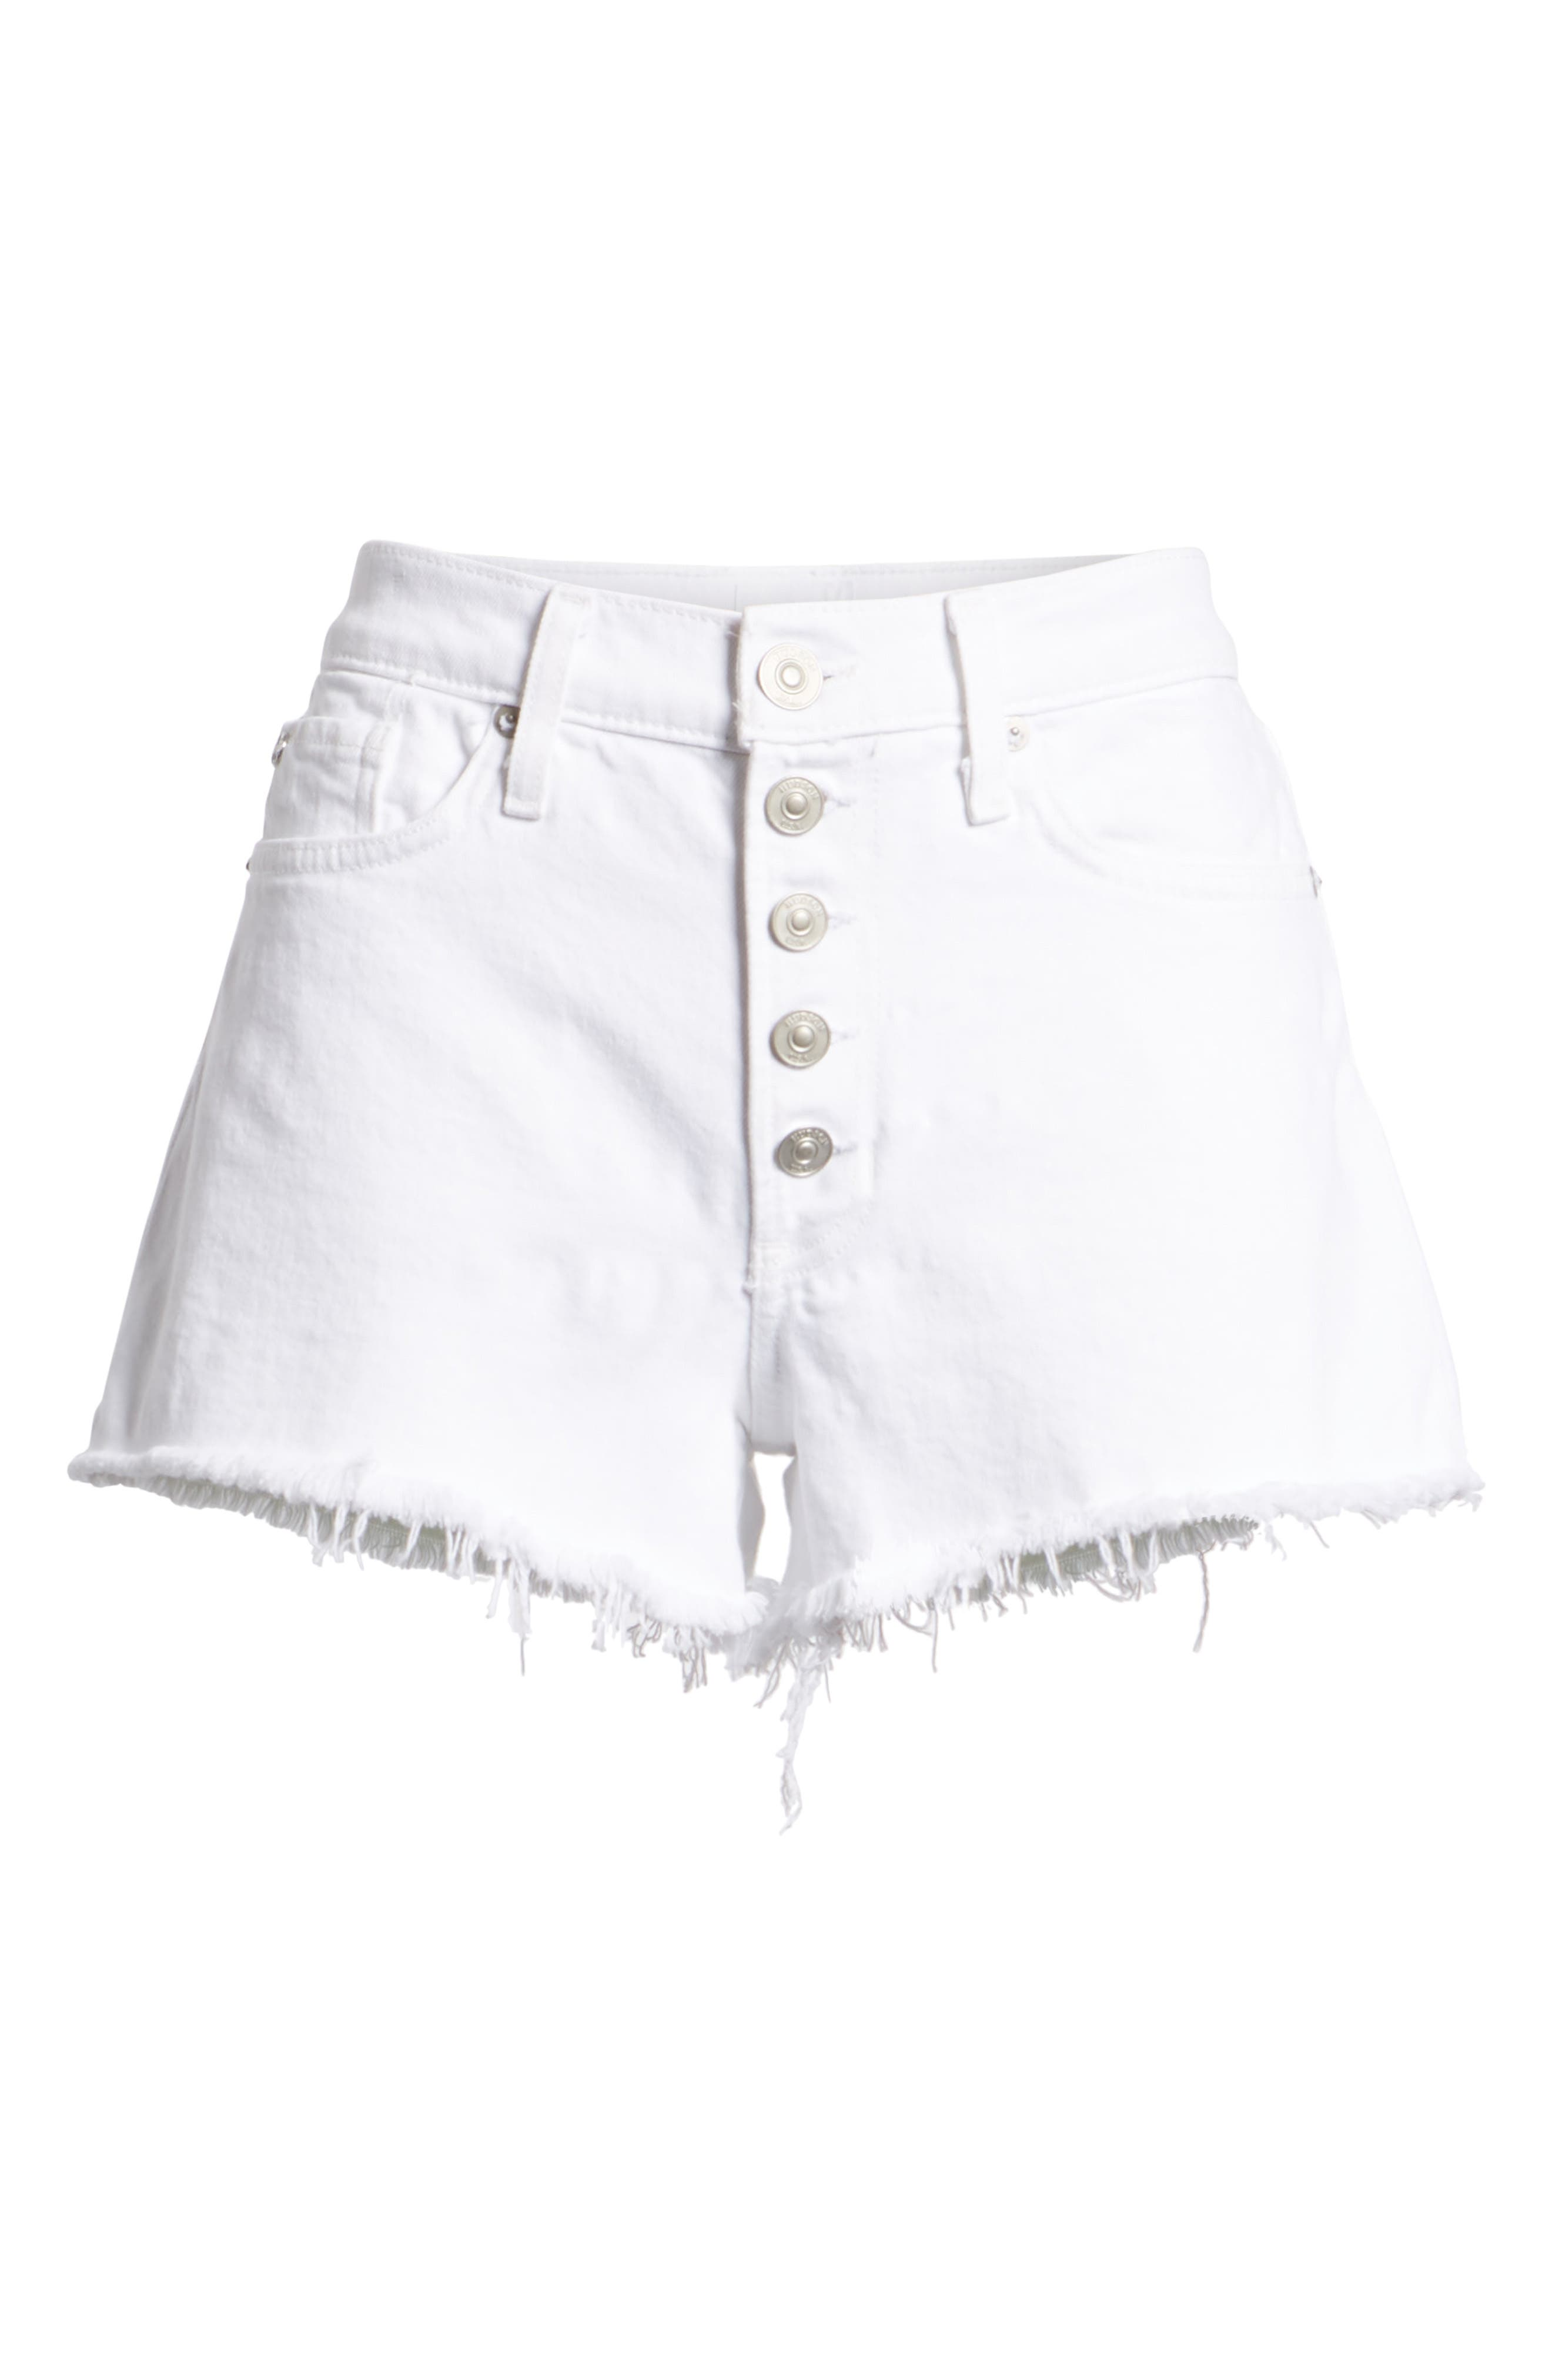 Zoeey Button Fly High Waist Denim Shorts,                             Alternate thumbnail 7, color,                             White